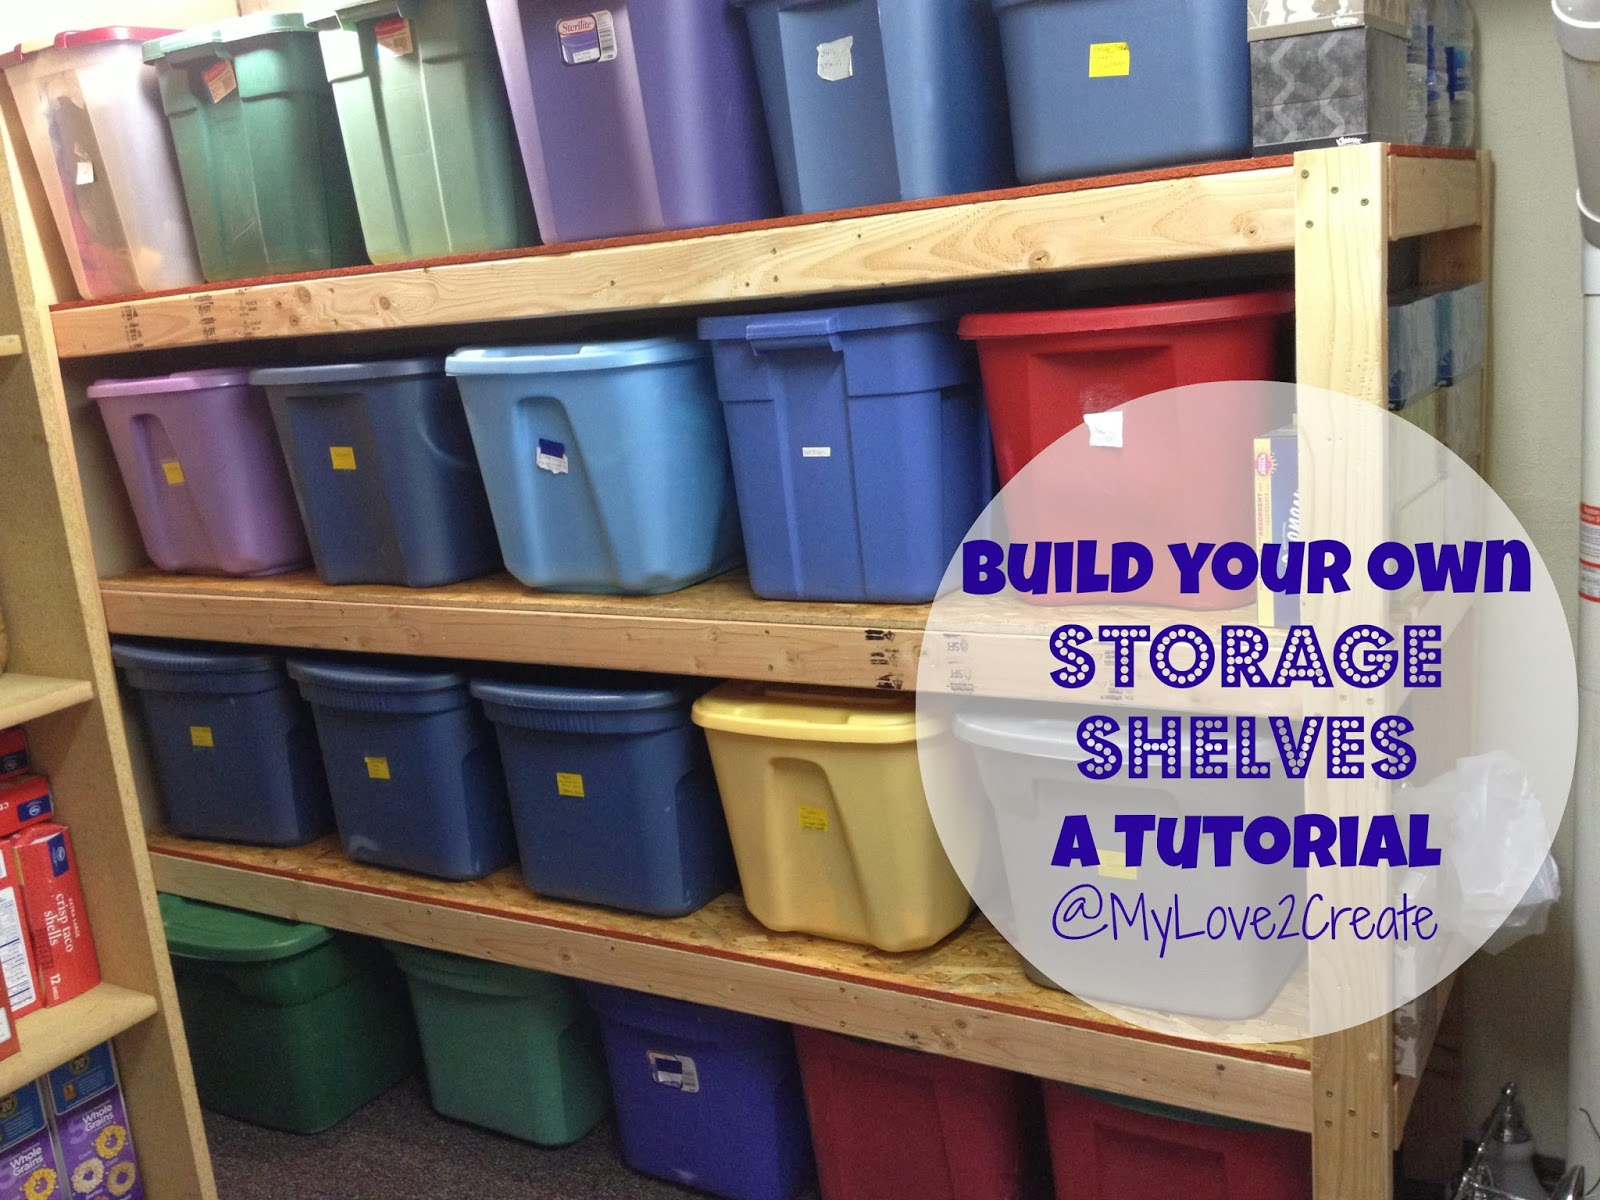 Storage Shelves, a tutorial | My Love 2 Create